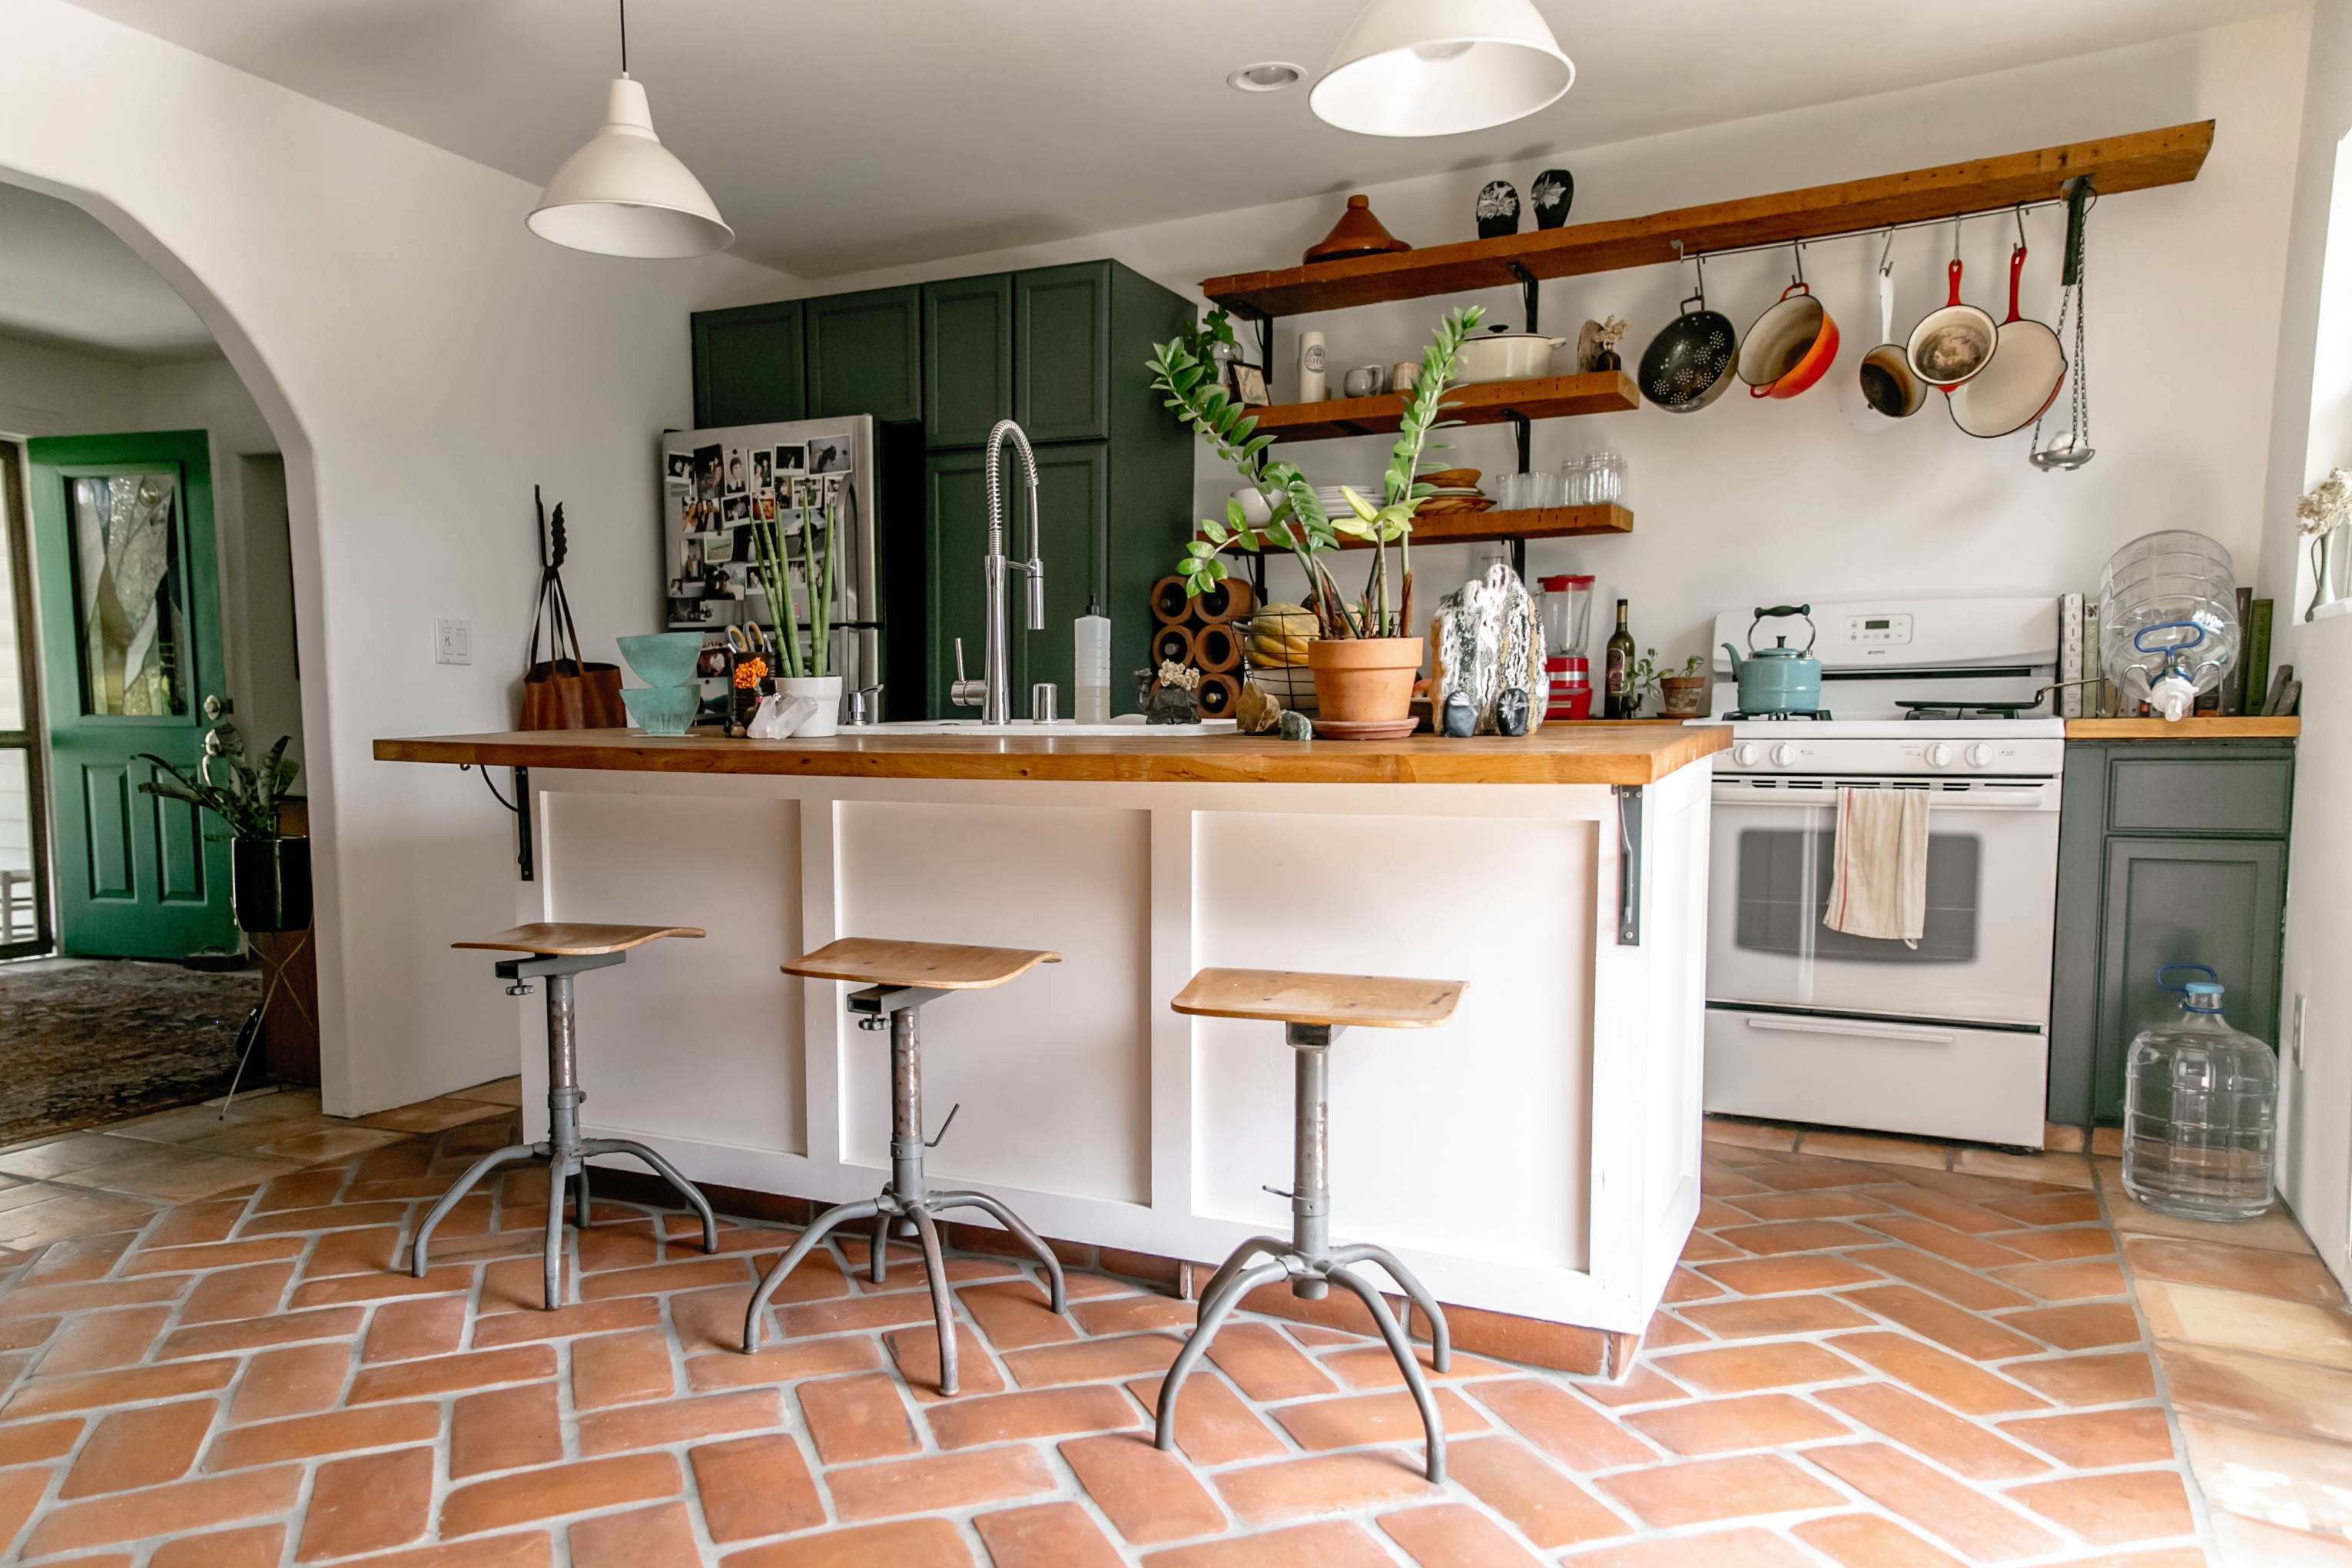 Mexican Inspired Tile Floors In The Kitchen Ideas And Inspiration Hunker